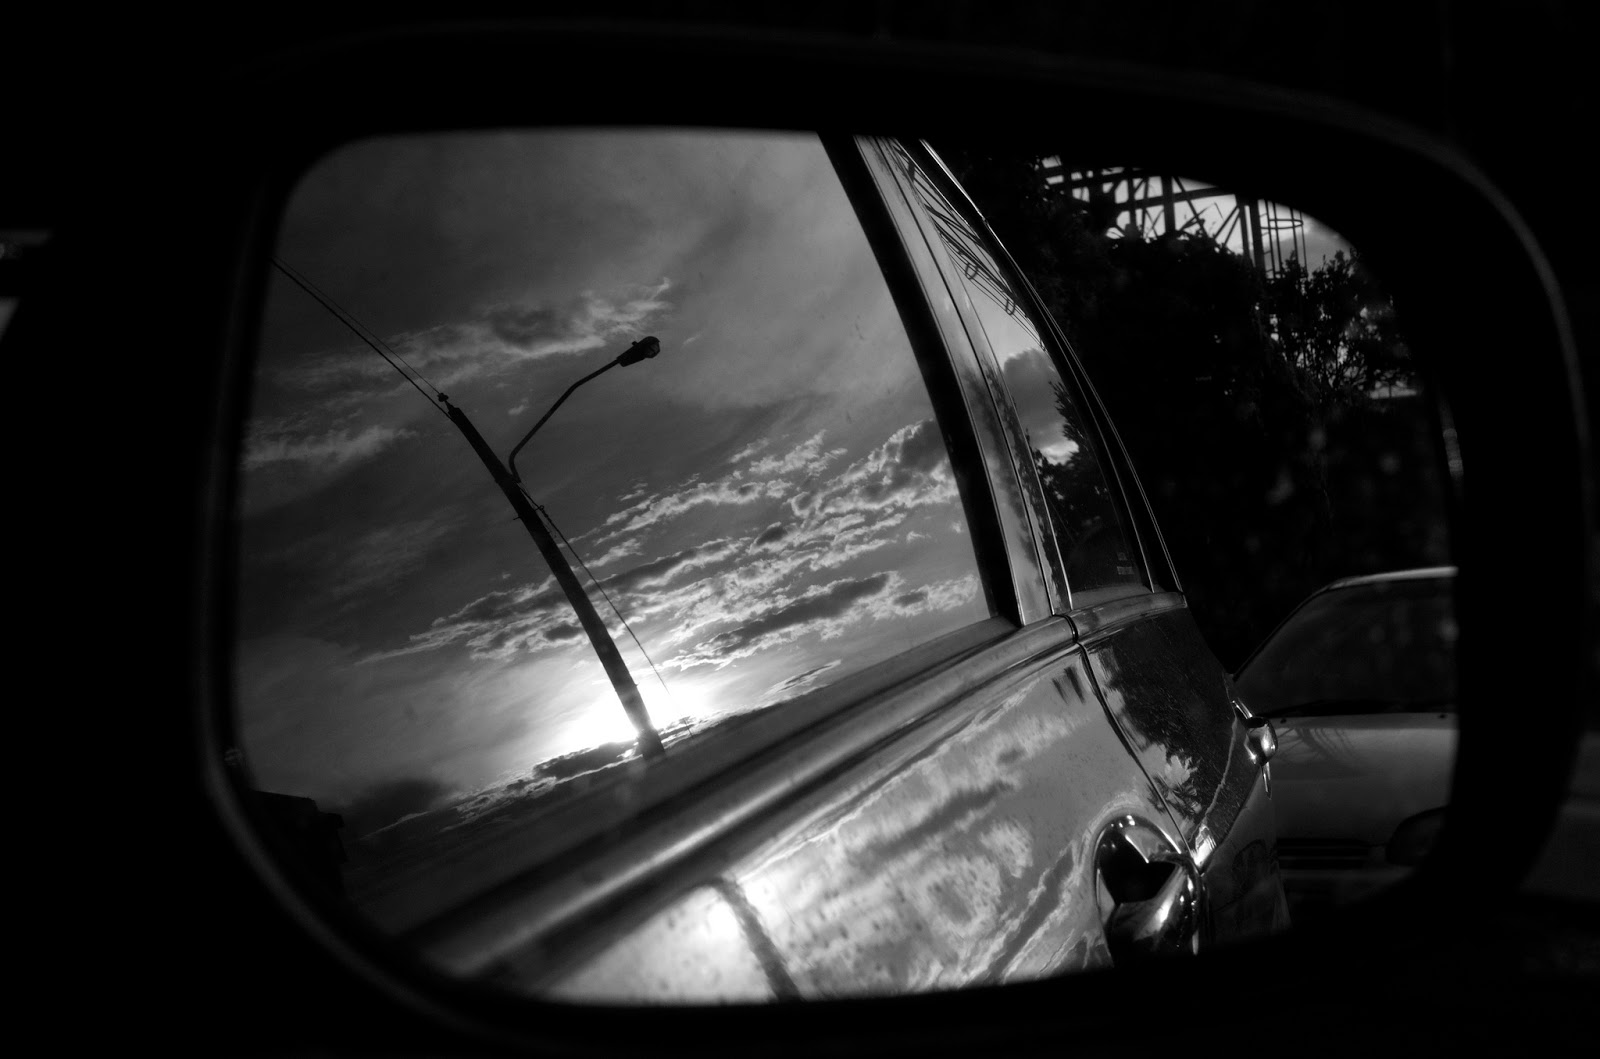 Reflections of the day - Oscar Funes